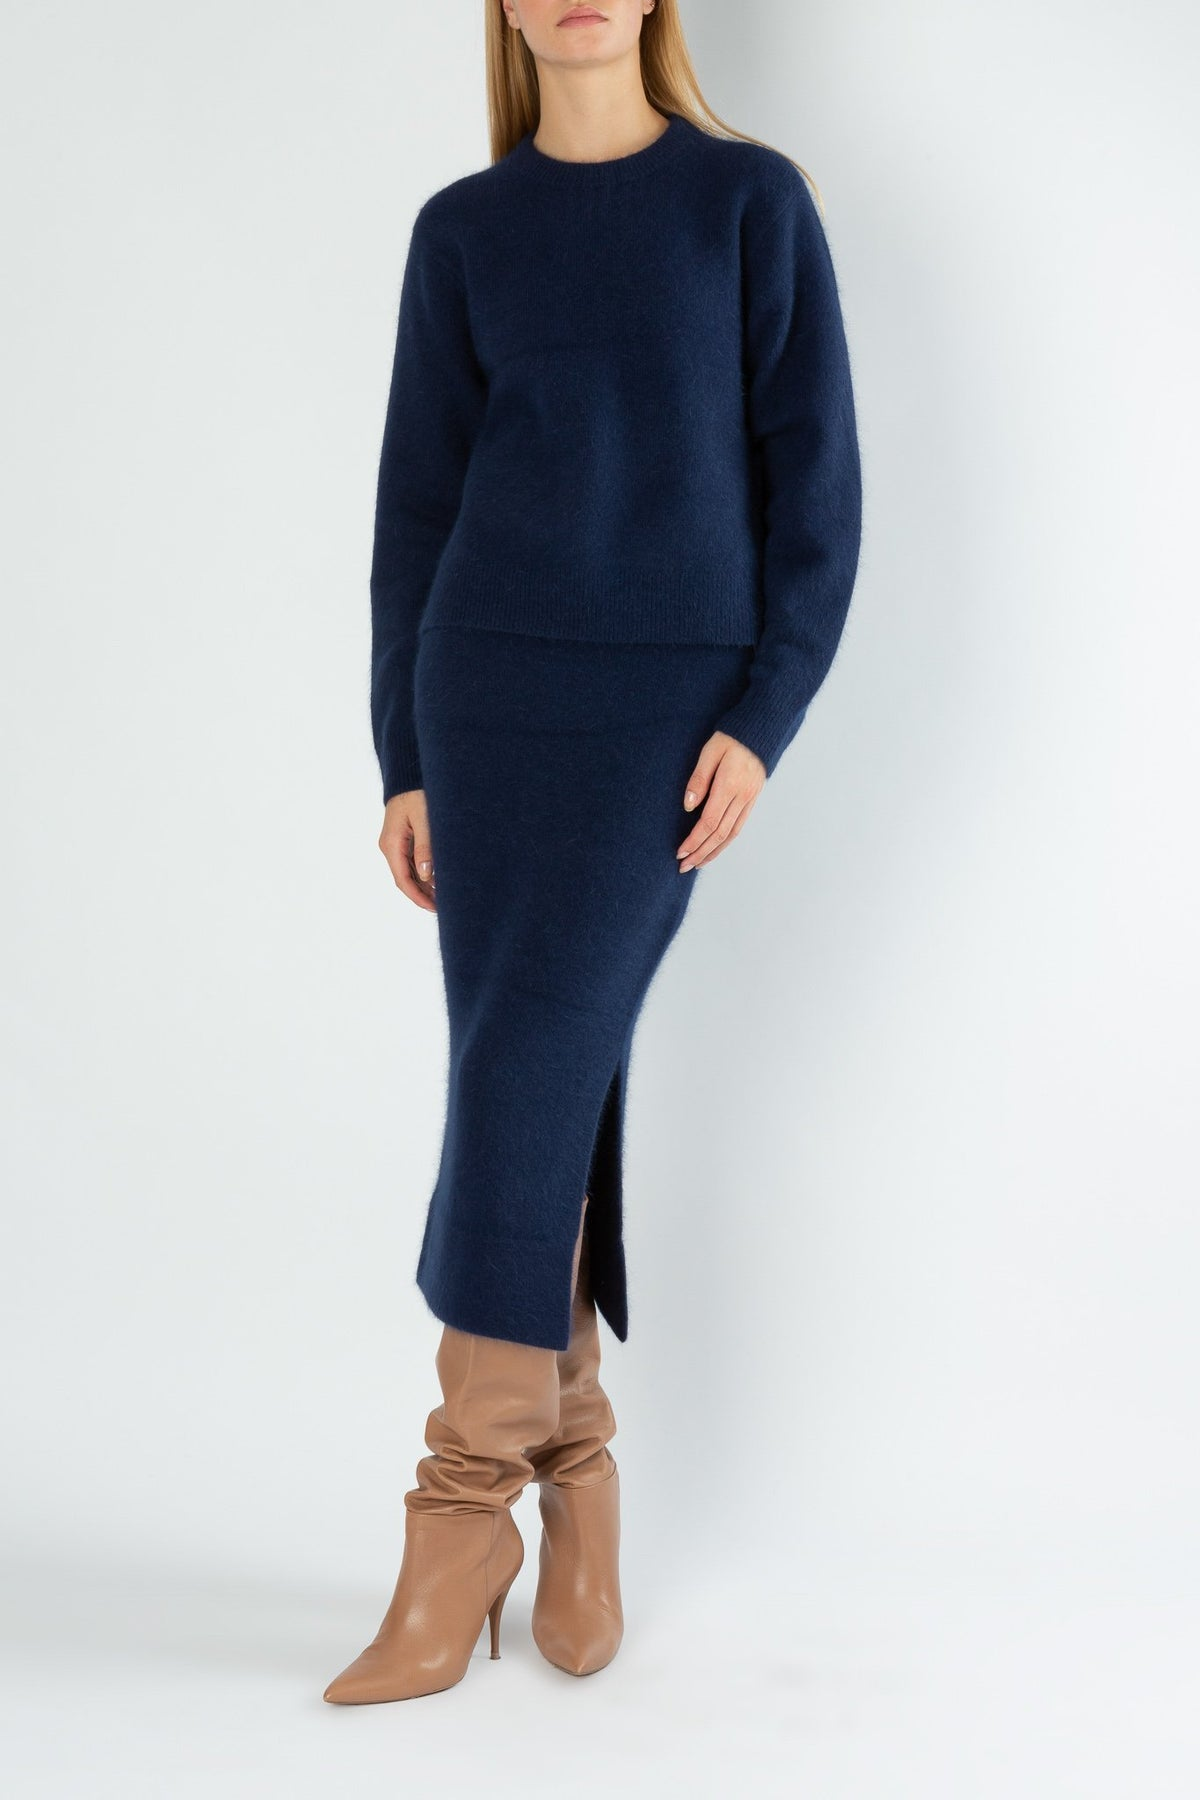 Present | Knitted Top | Navy